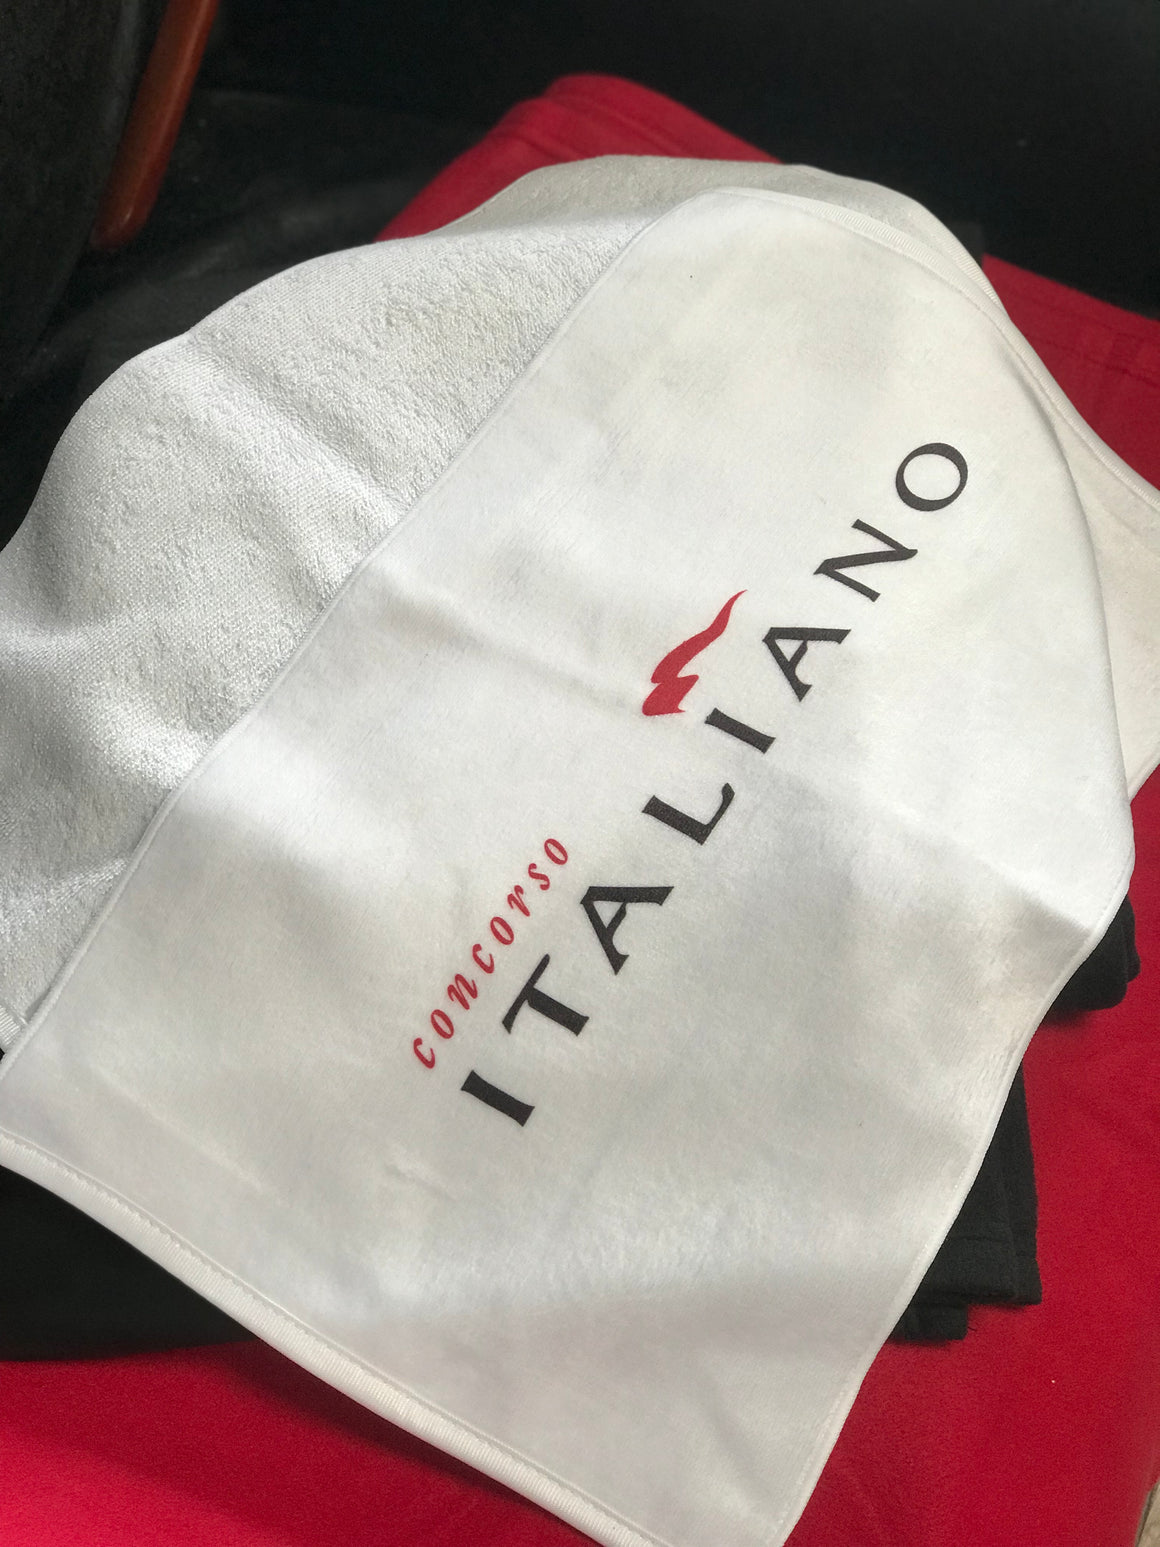 Concorsco Italiano Towels - The Sox Box